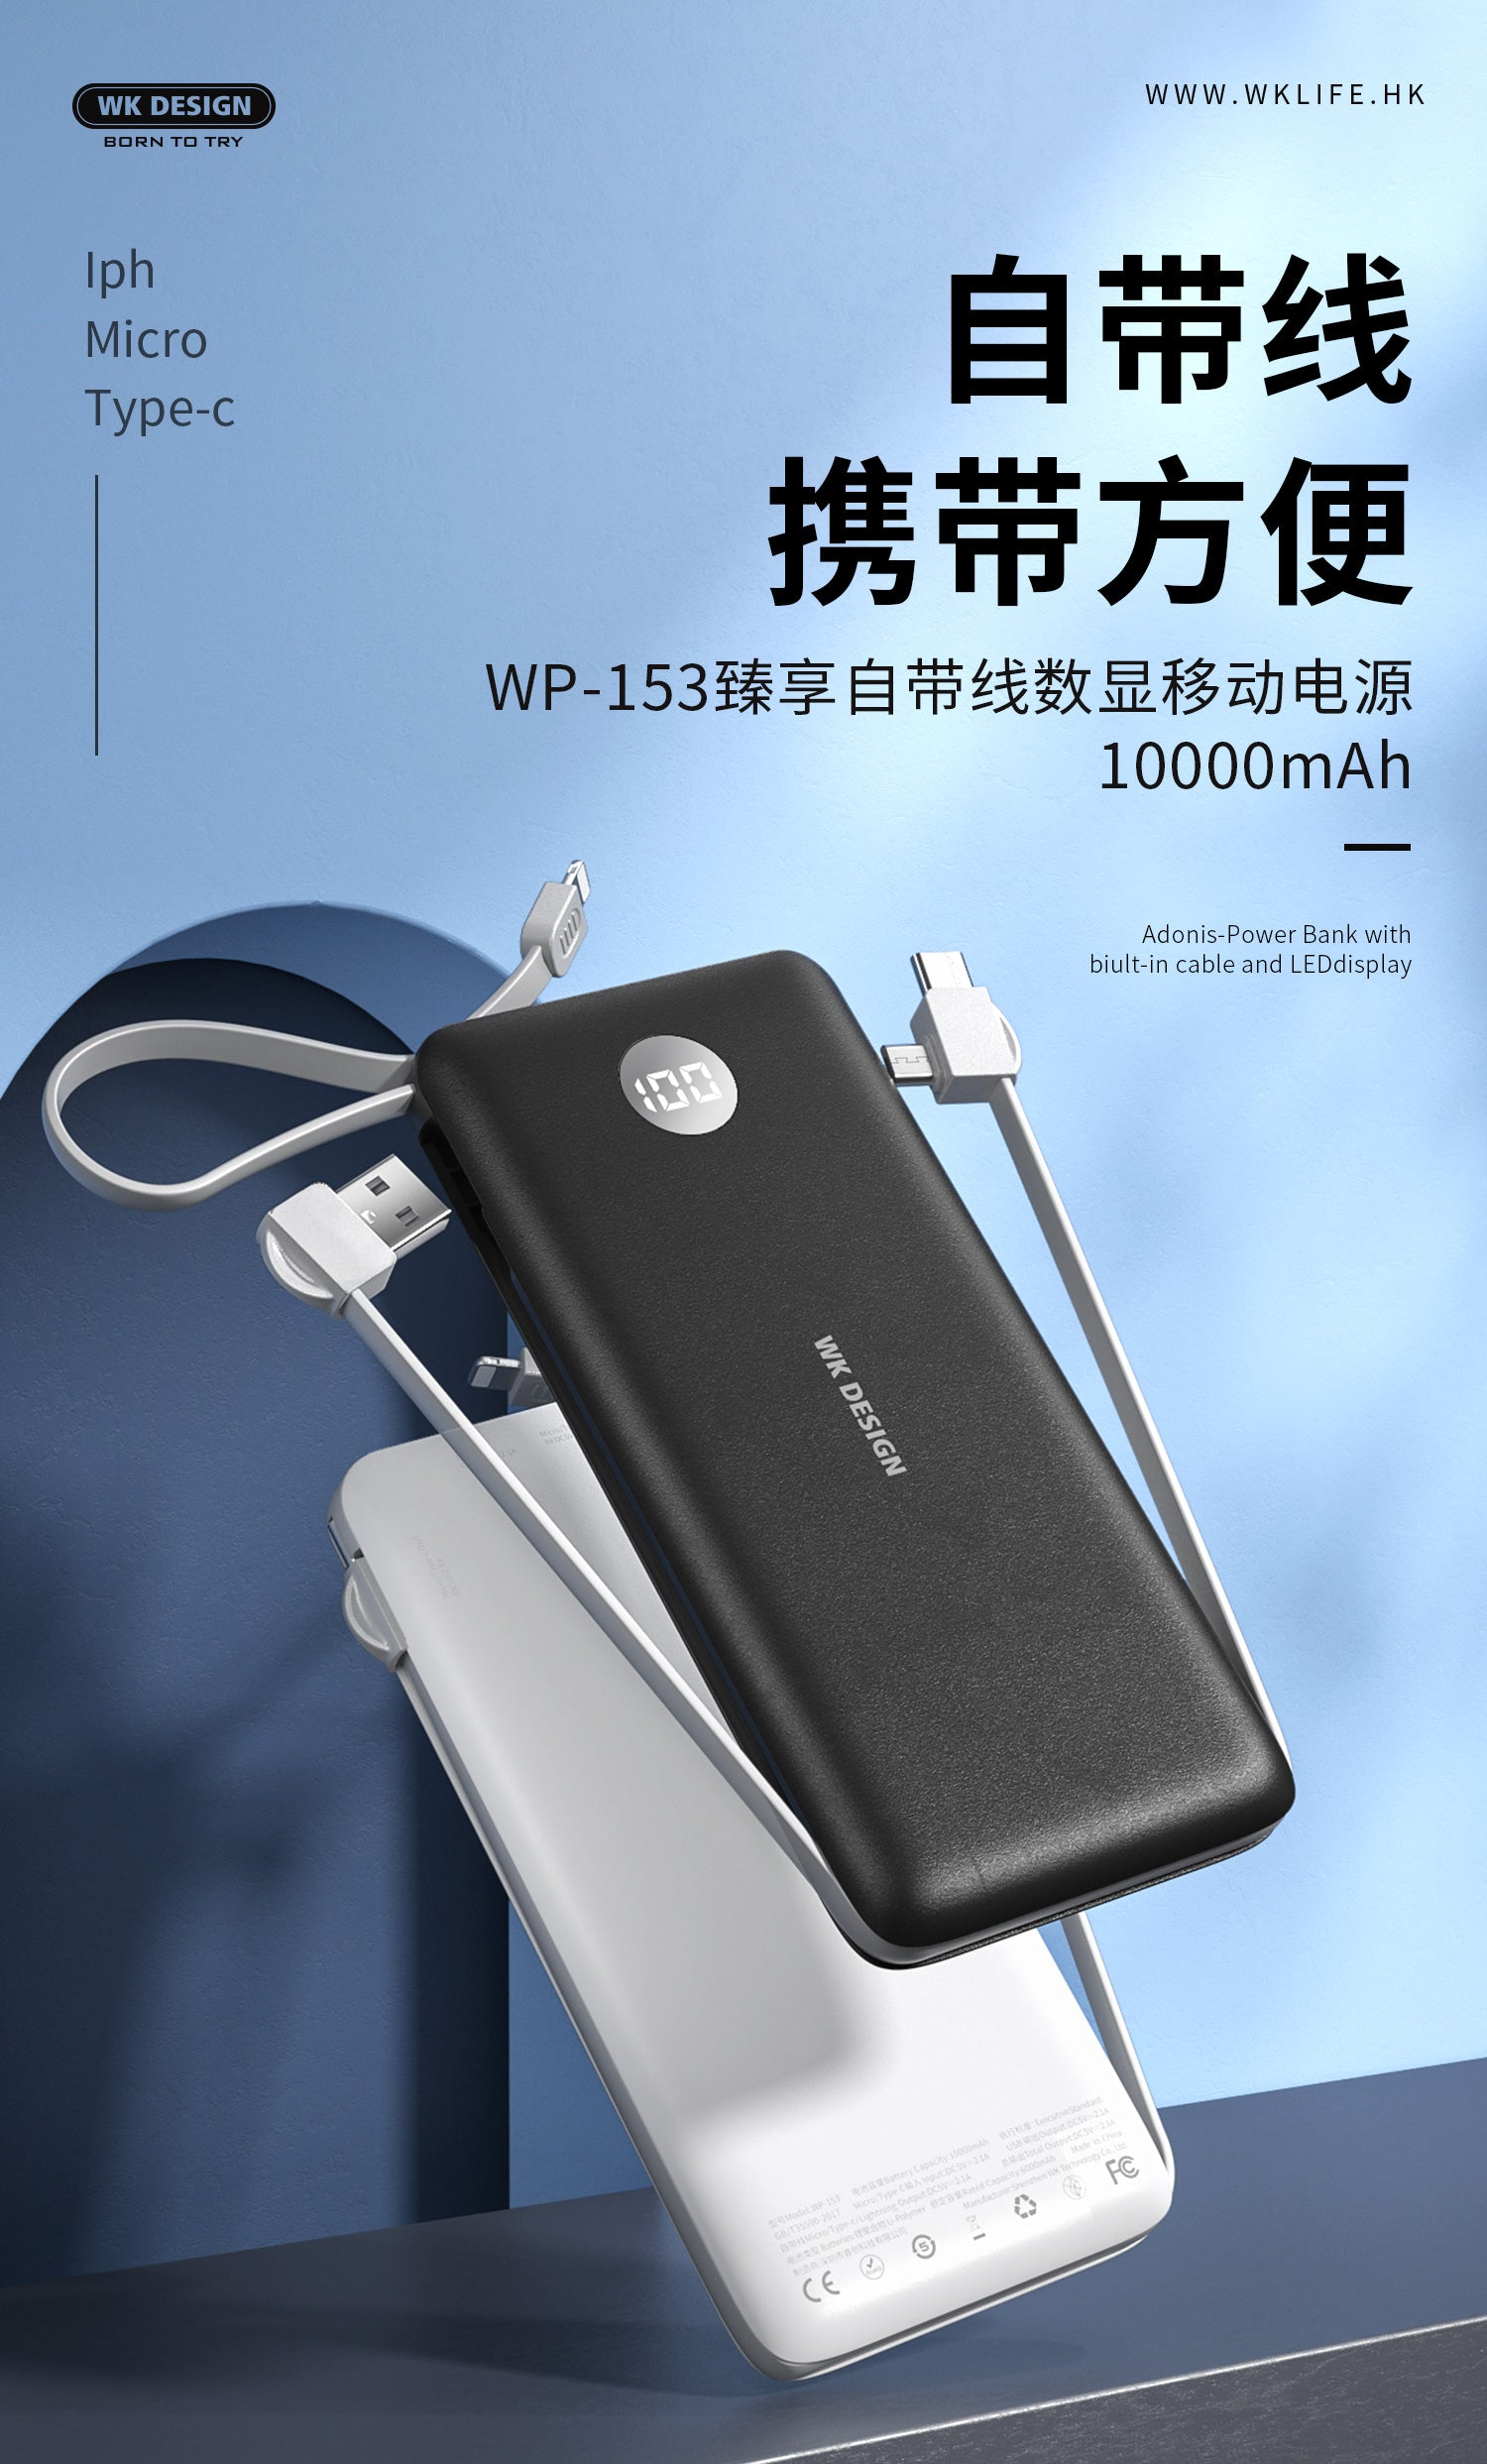 WP-153 Powerbank 10000mAh With Biult-in Cable